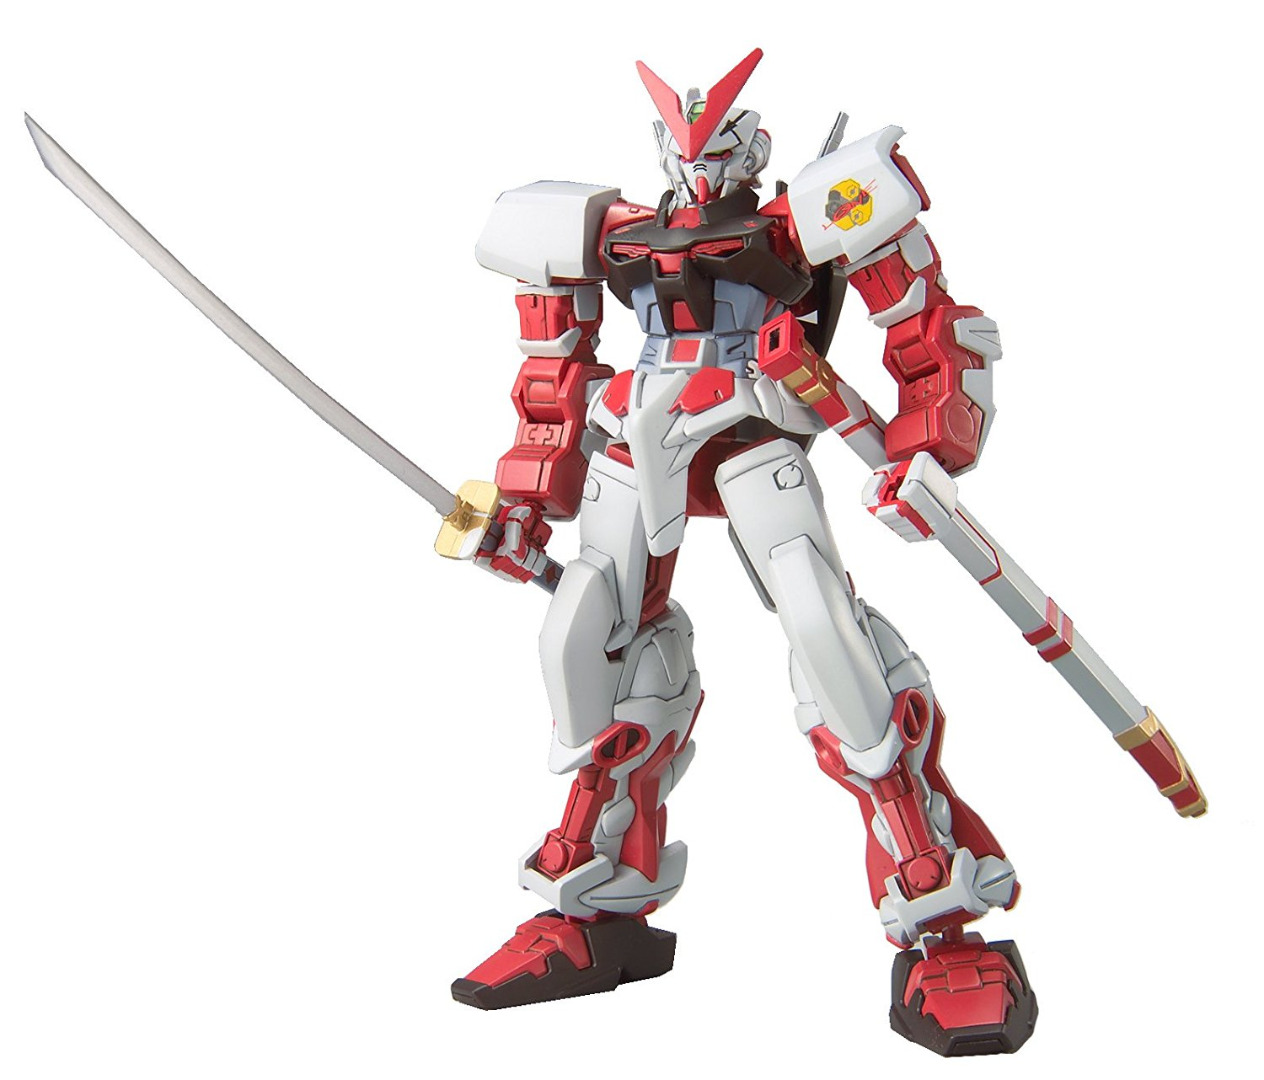 HG High Grade Gundam Astray Red 1/144